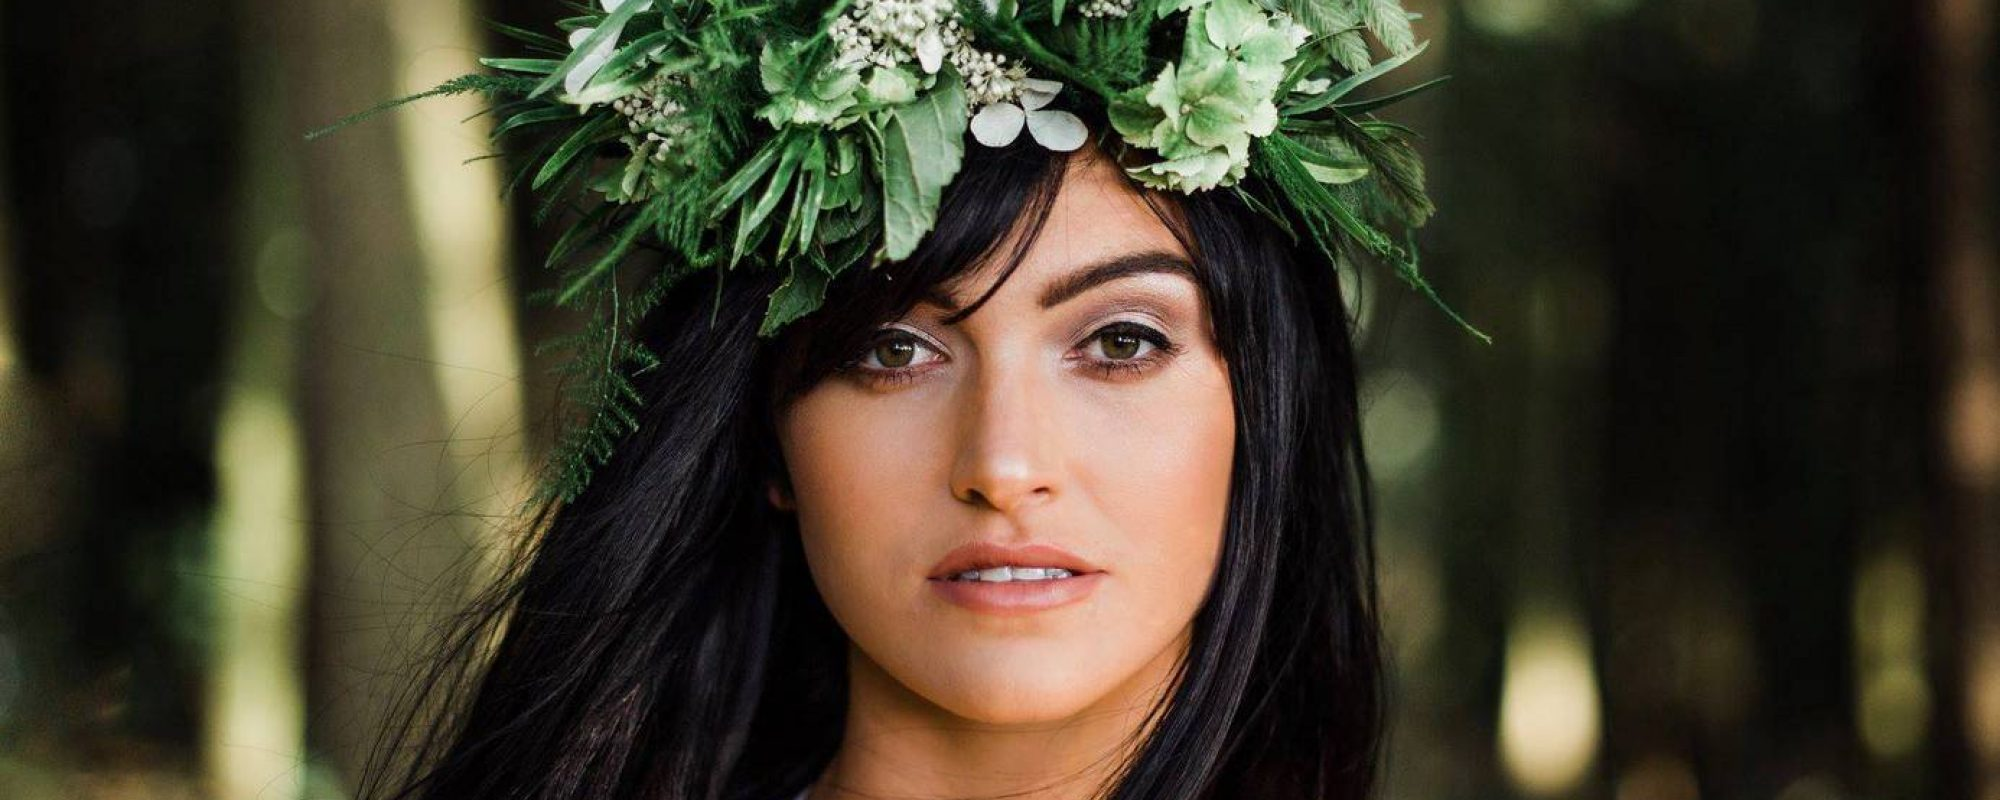 Closeup of Bride during woodland wedding photo shoot. Bride has tousled long dark black hair and a sweeping fringe. Bride has flawless skin, soft contour and bold blusher. Highlighter is used to accentuate her features, especially her cheekbones and eyelids. She has a soft smokey eyeshadow in her crease, a shimmering shadow on the lid and long, thick eyelashes. Black liner is applied to the lash line to further enhance the eyes and the look is finished off with a glossy deep pink lip. Bride wears a foliage flower crown by Elle Flowers UK. Hair and makeup created by professional, freelance Hair & Makeup Artist mubyleigh.